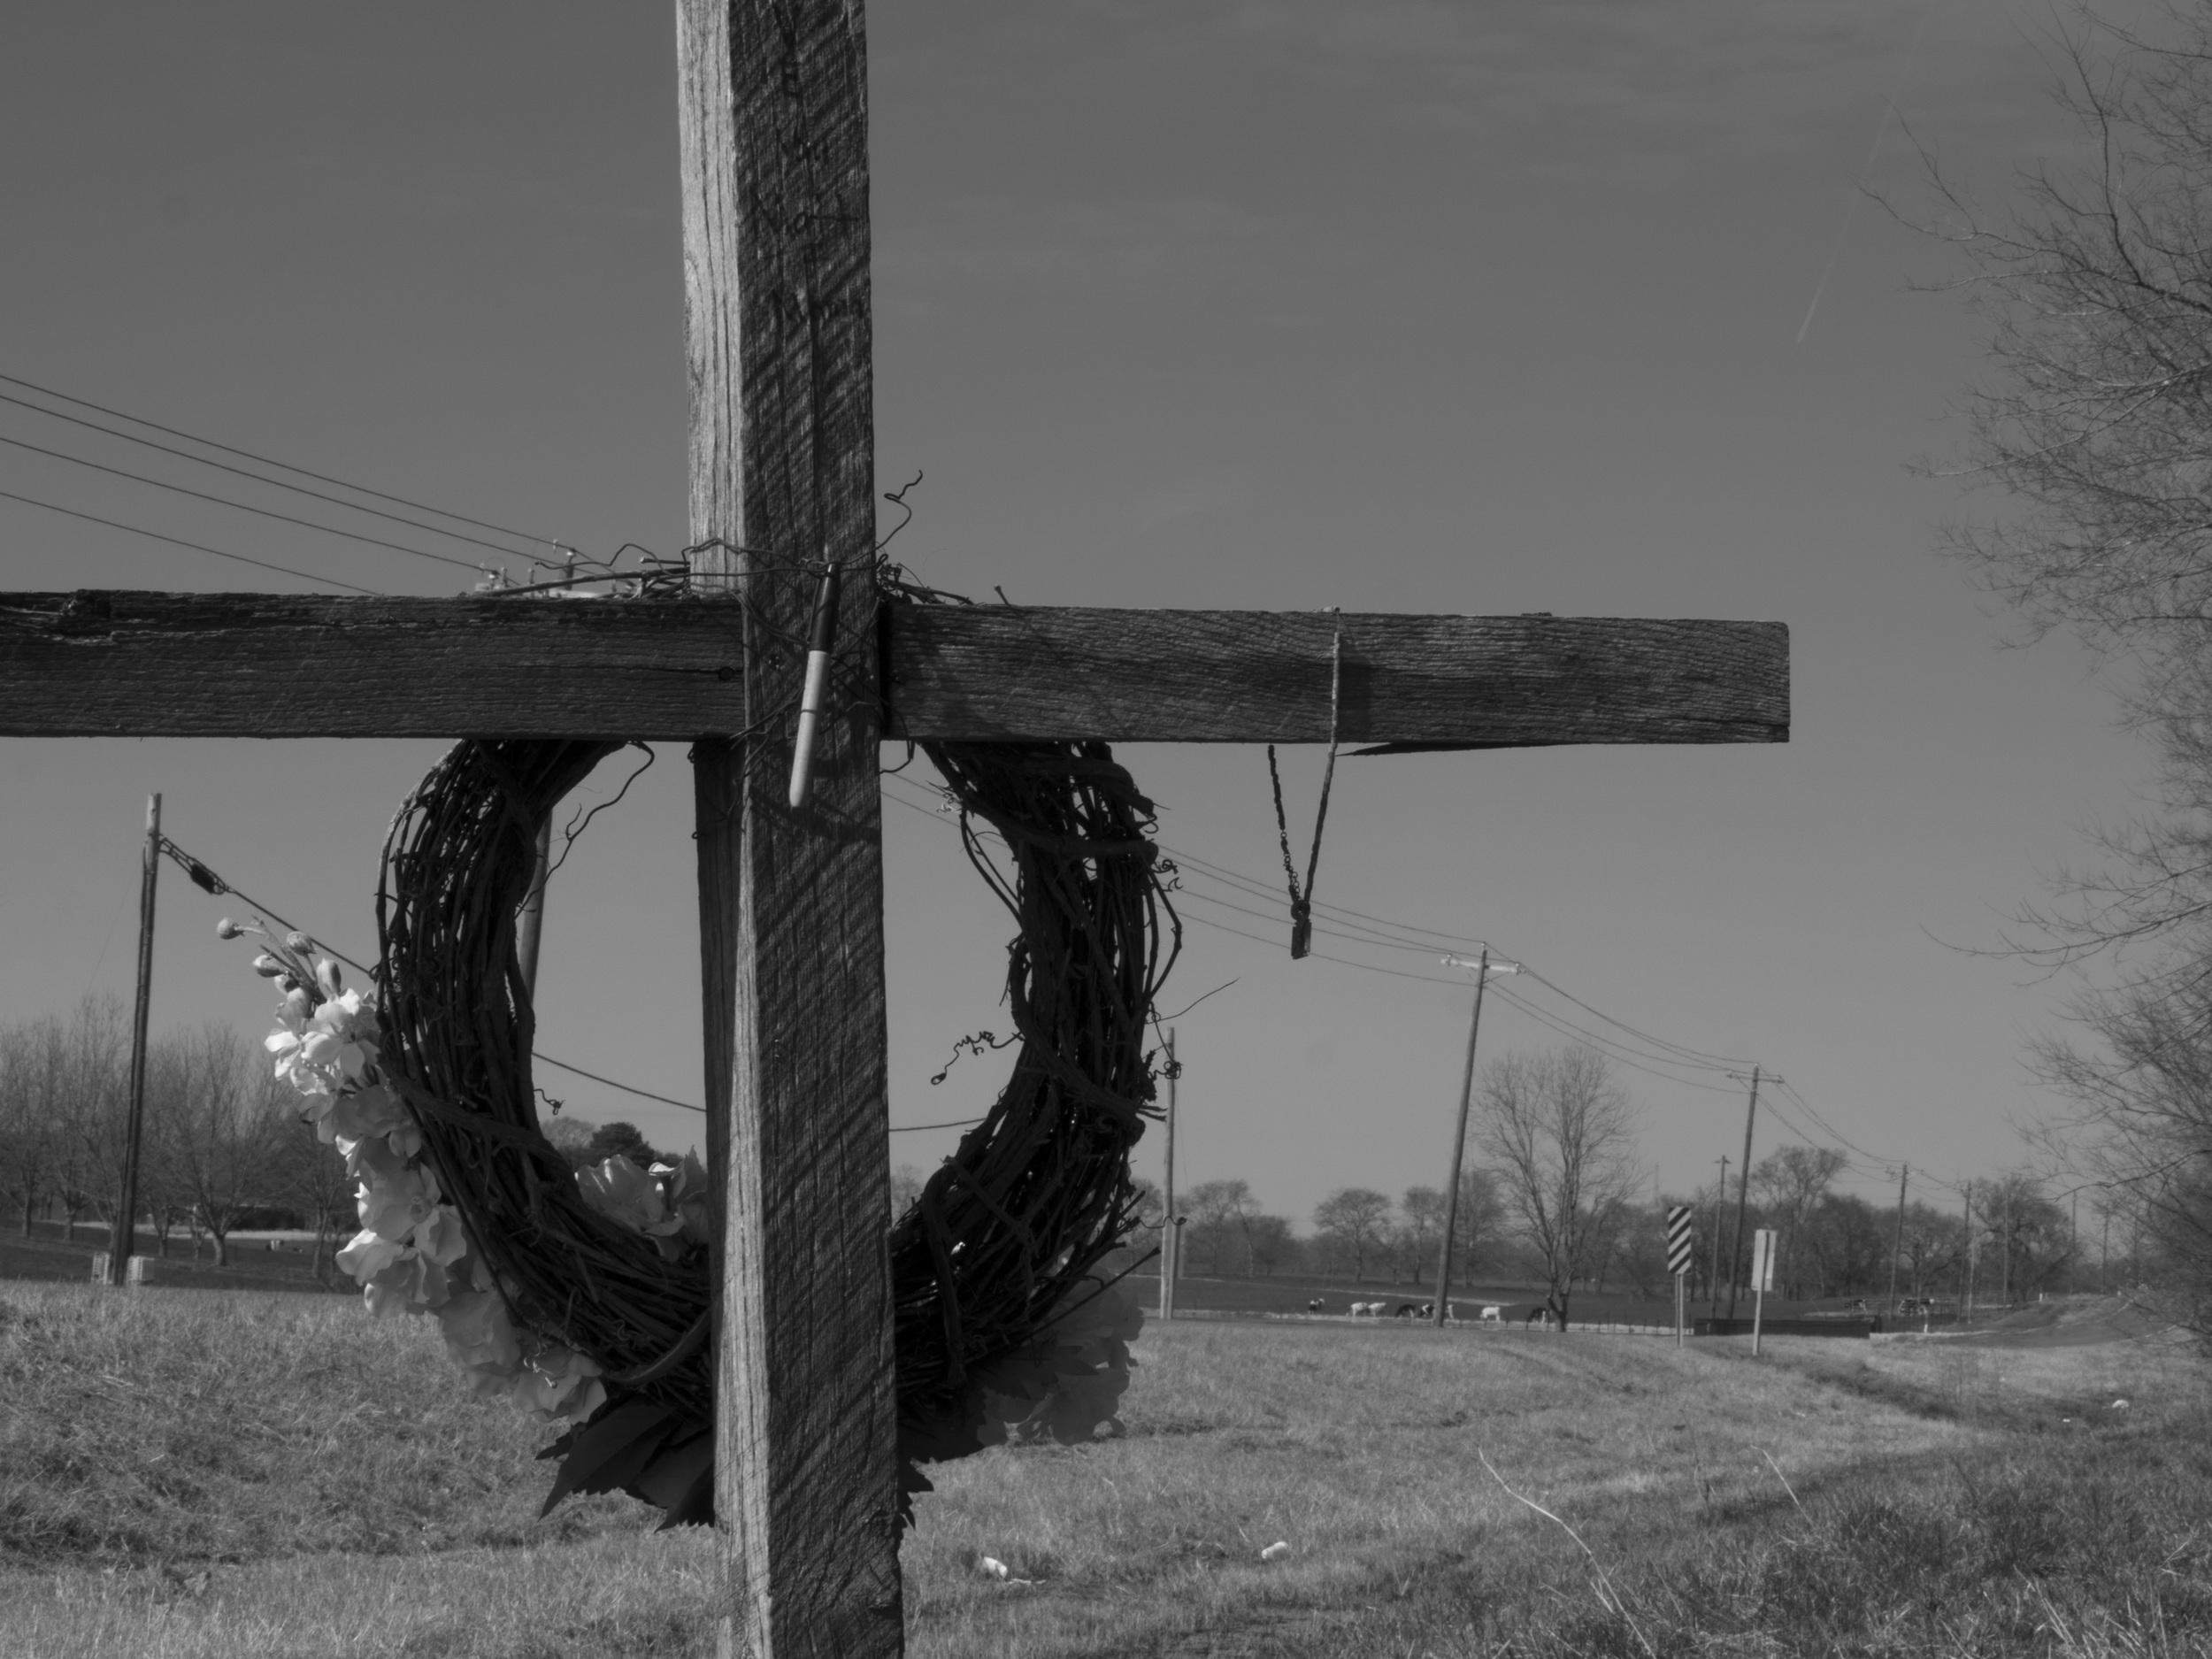 On the back of the cross was a sharpie, used to write notes to Jason. It is this one detail which slapped me in the face and broke my heart.